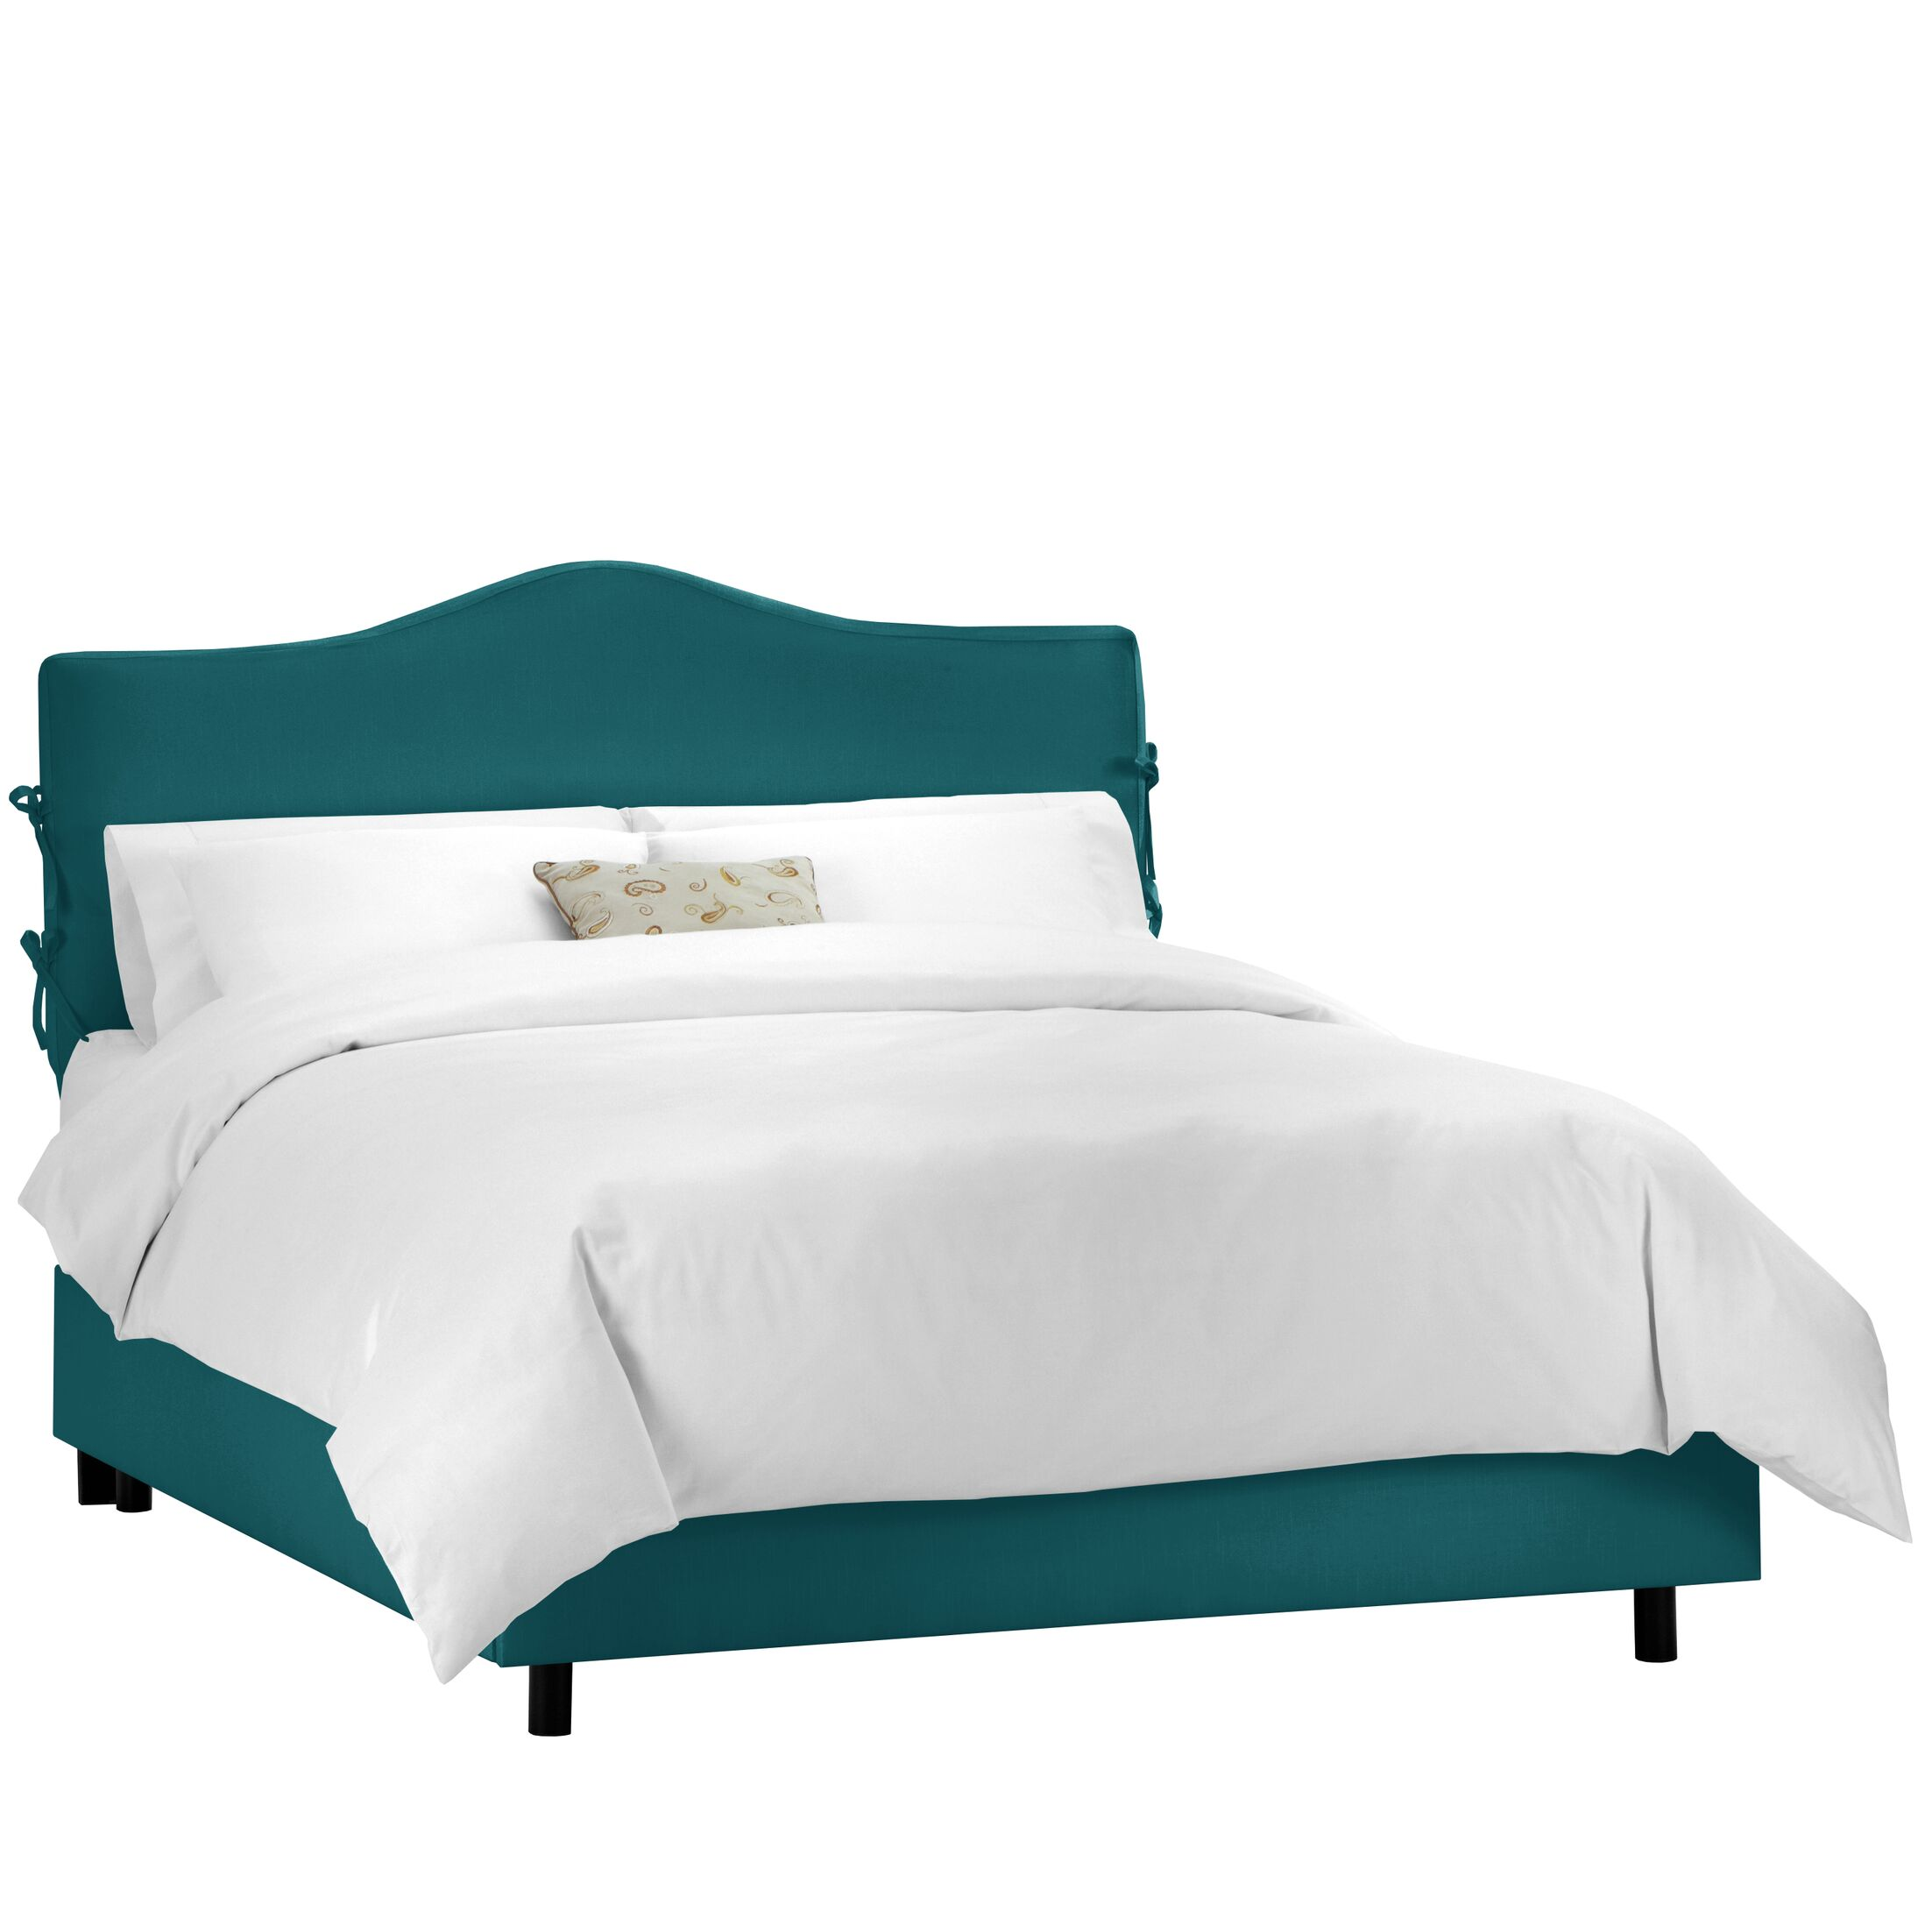 Lemuel Upholstered Panel Bed Size: California King, Color: Shantung Peacock